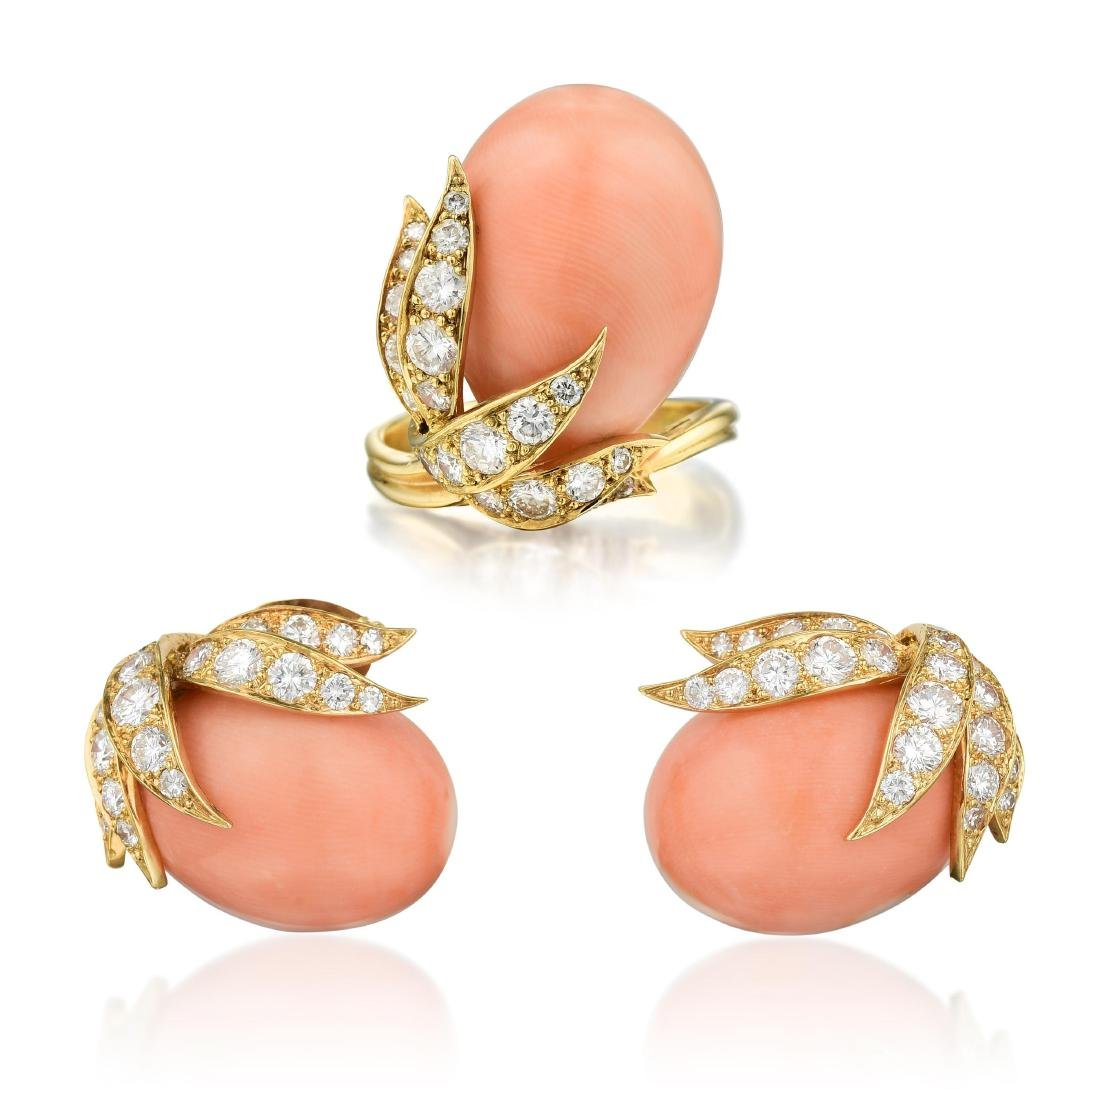 A Coral and Diamond Ring and Earrings Set, French